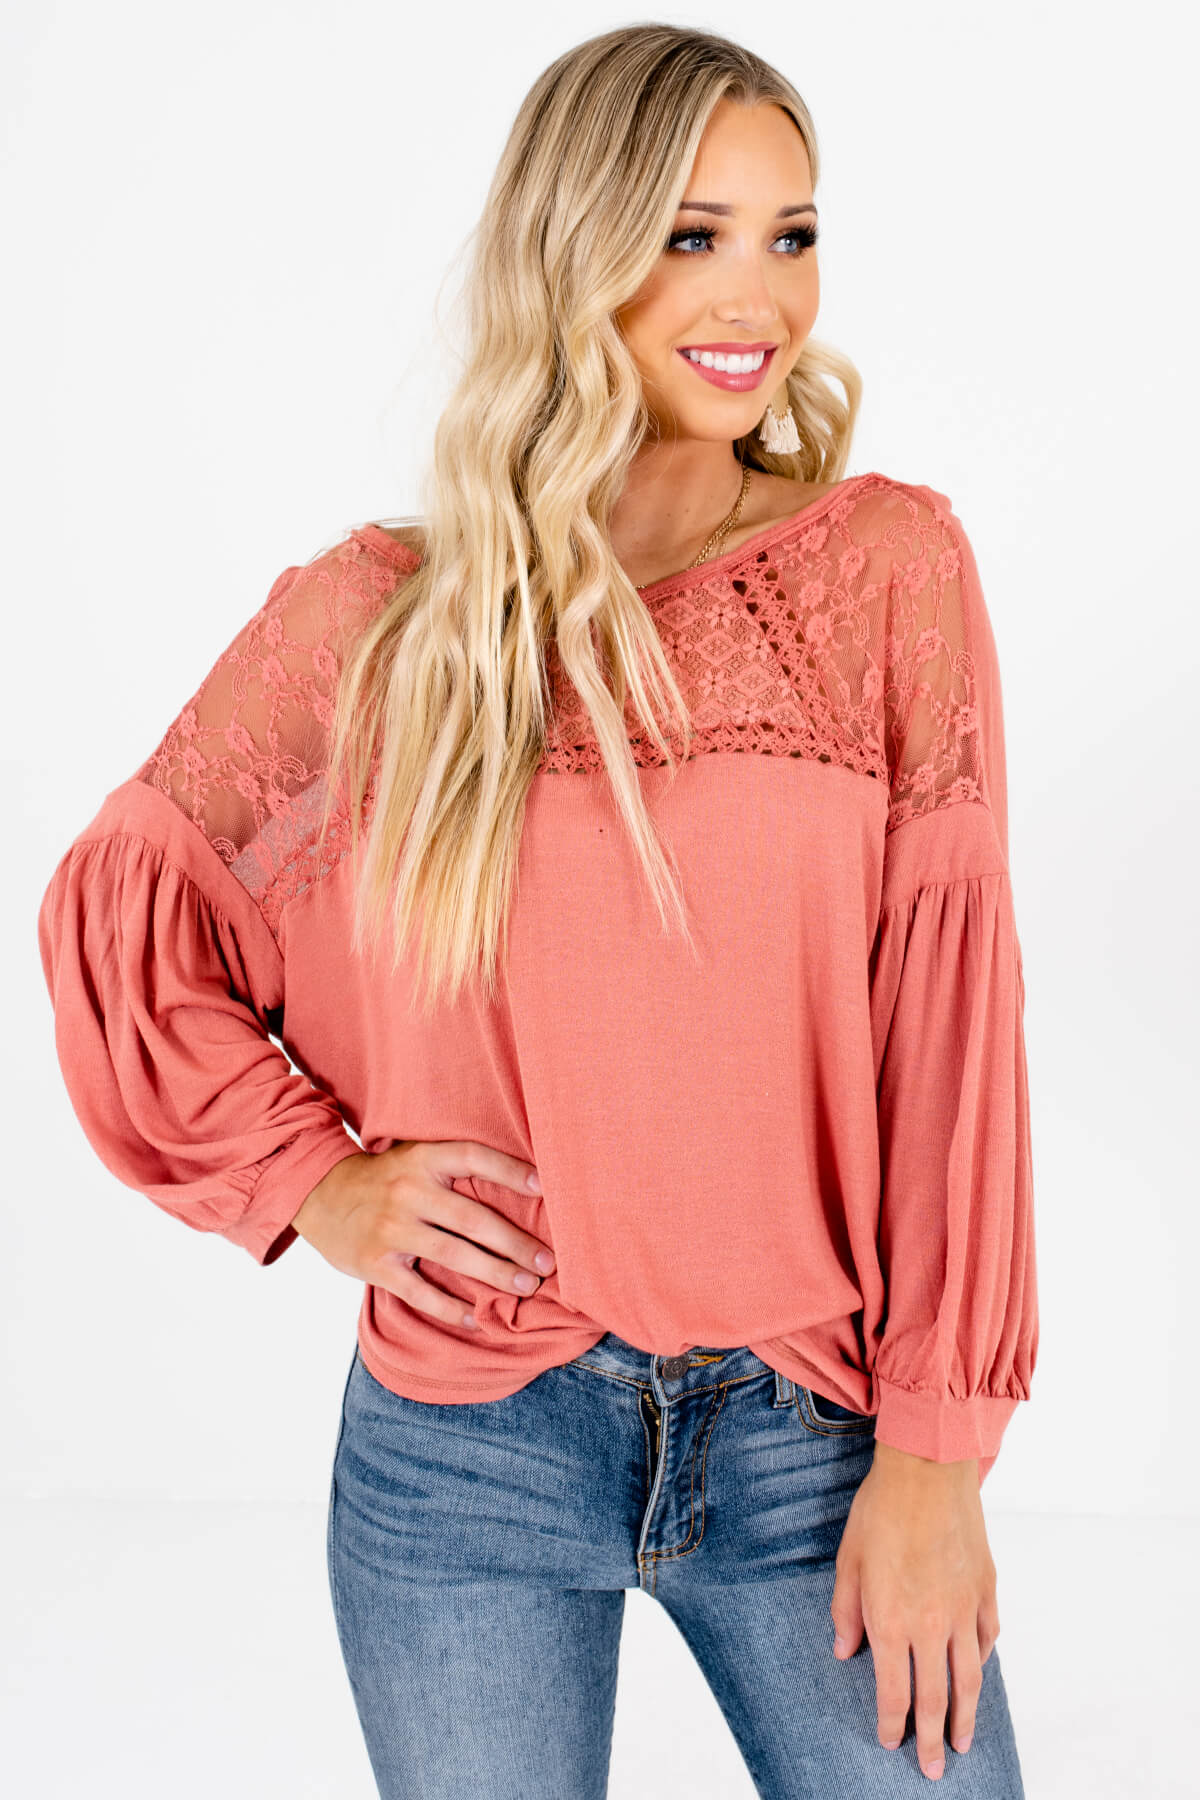 Pink Peasant Style Boutique Tops for Women